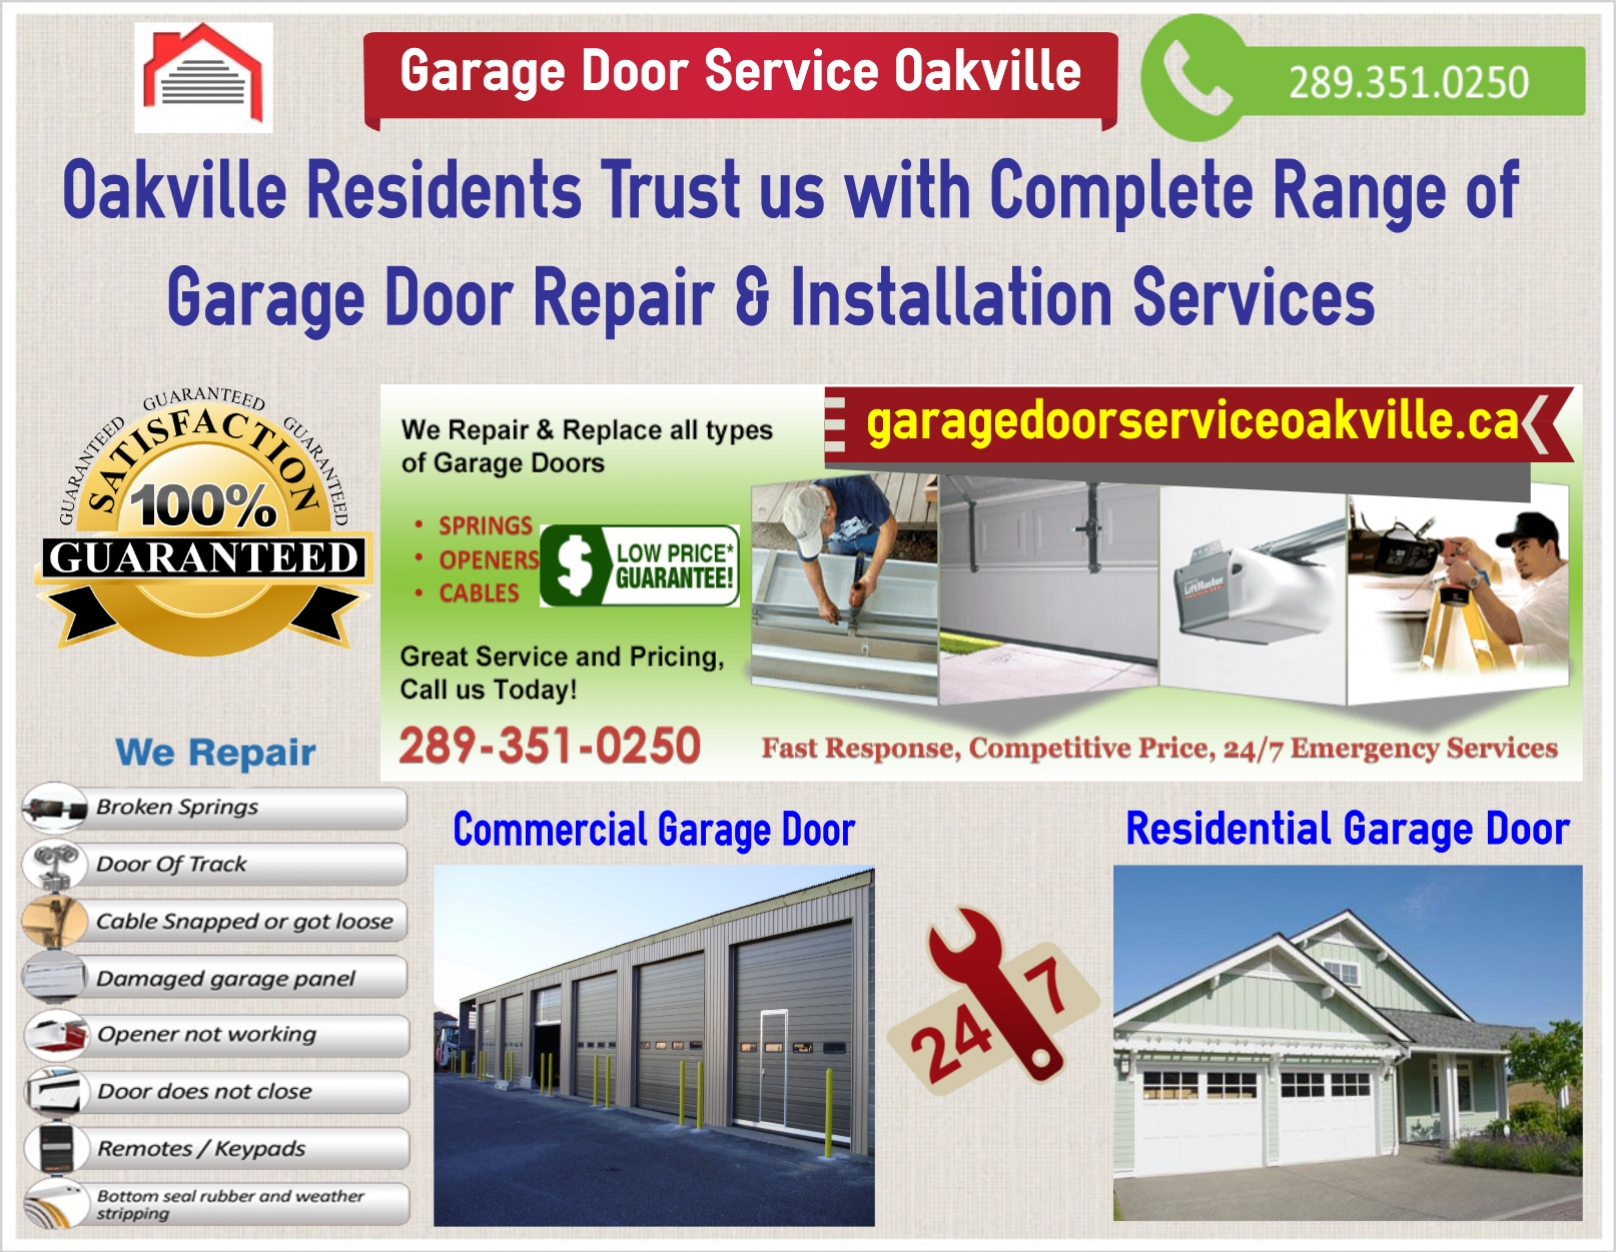 Garage door repair oakville free images at clker vector shared by garage door repair oakville 02 27 2014 garage door repair oakville image rubansaba